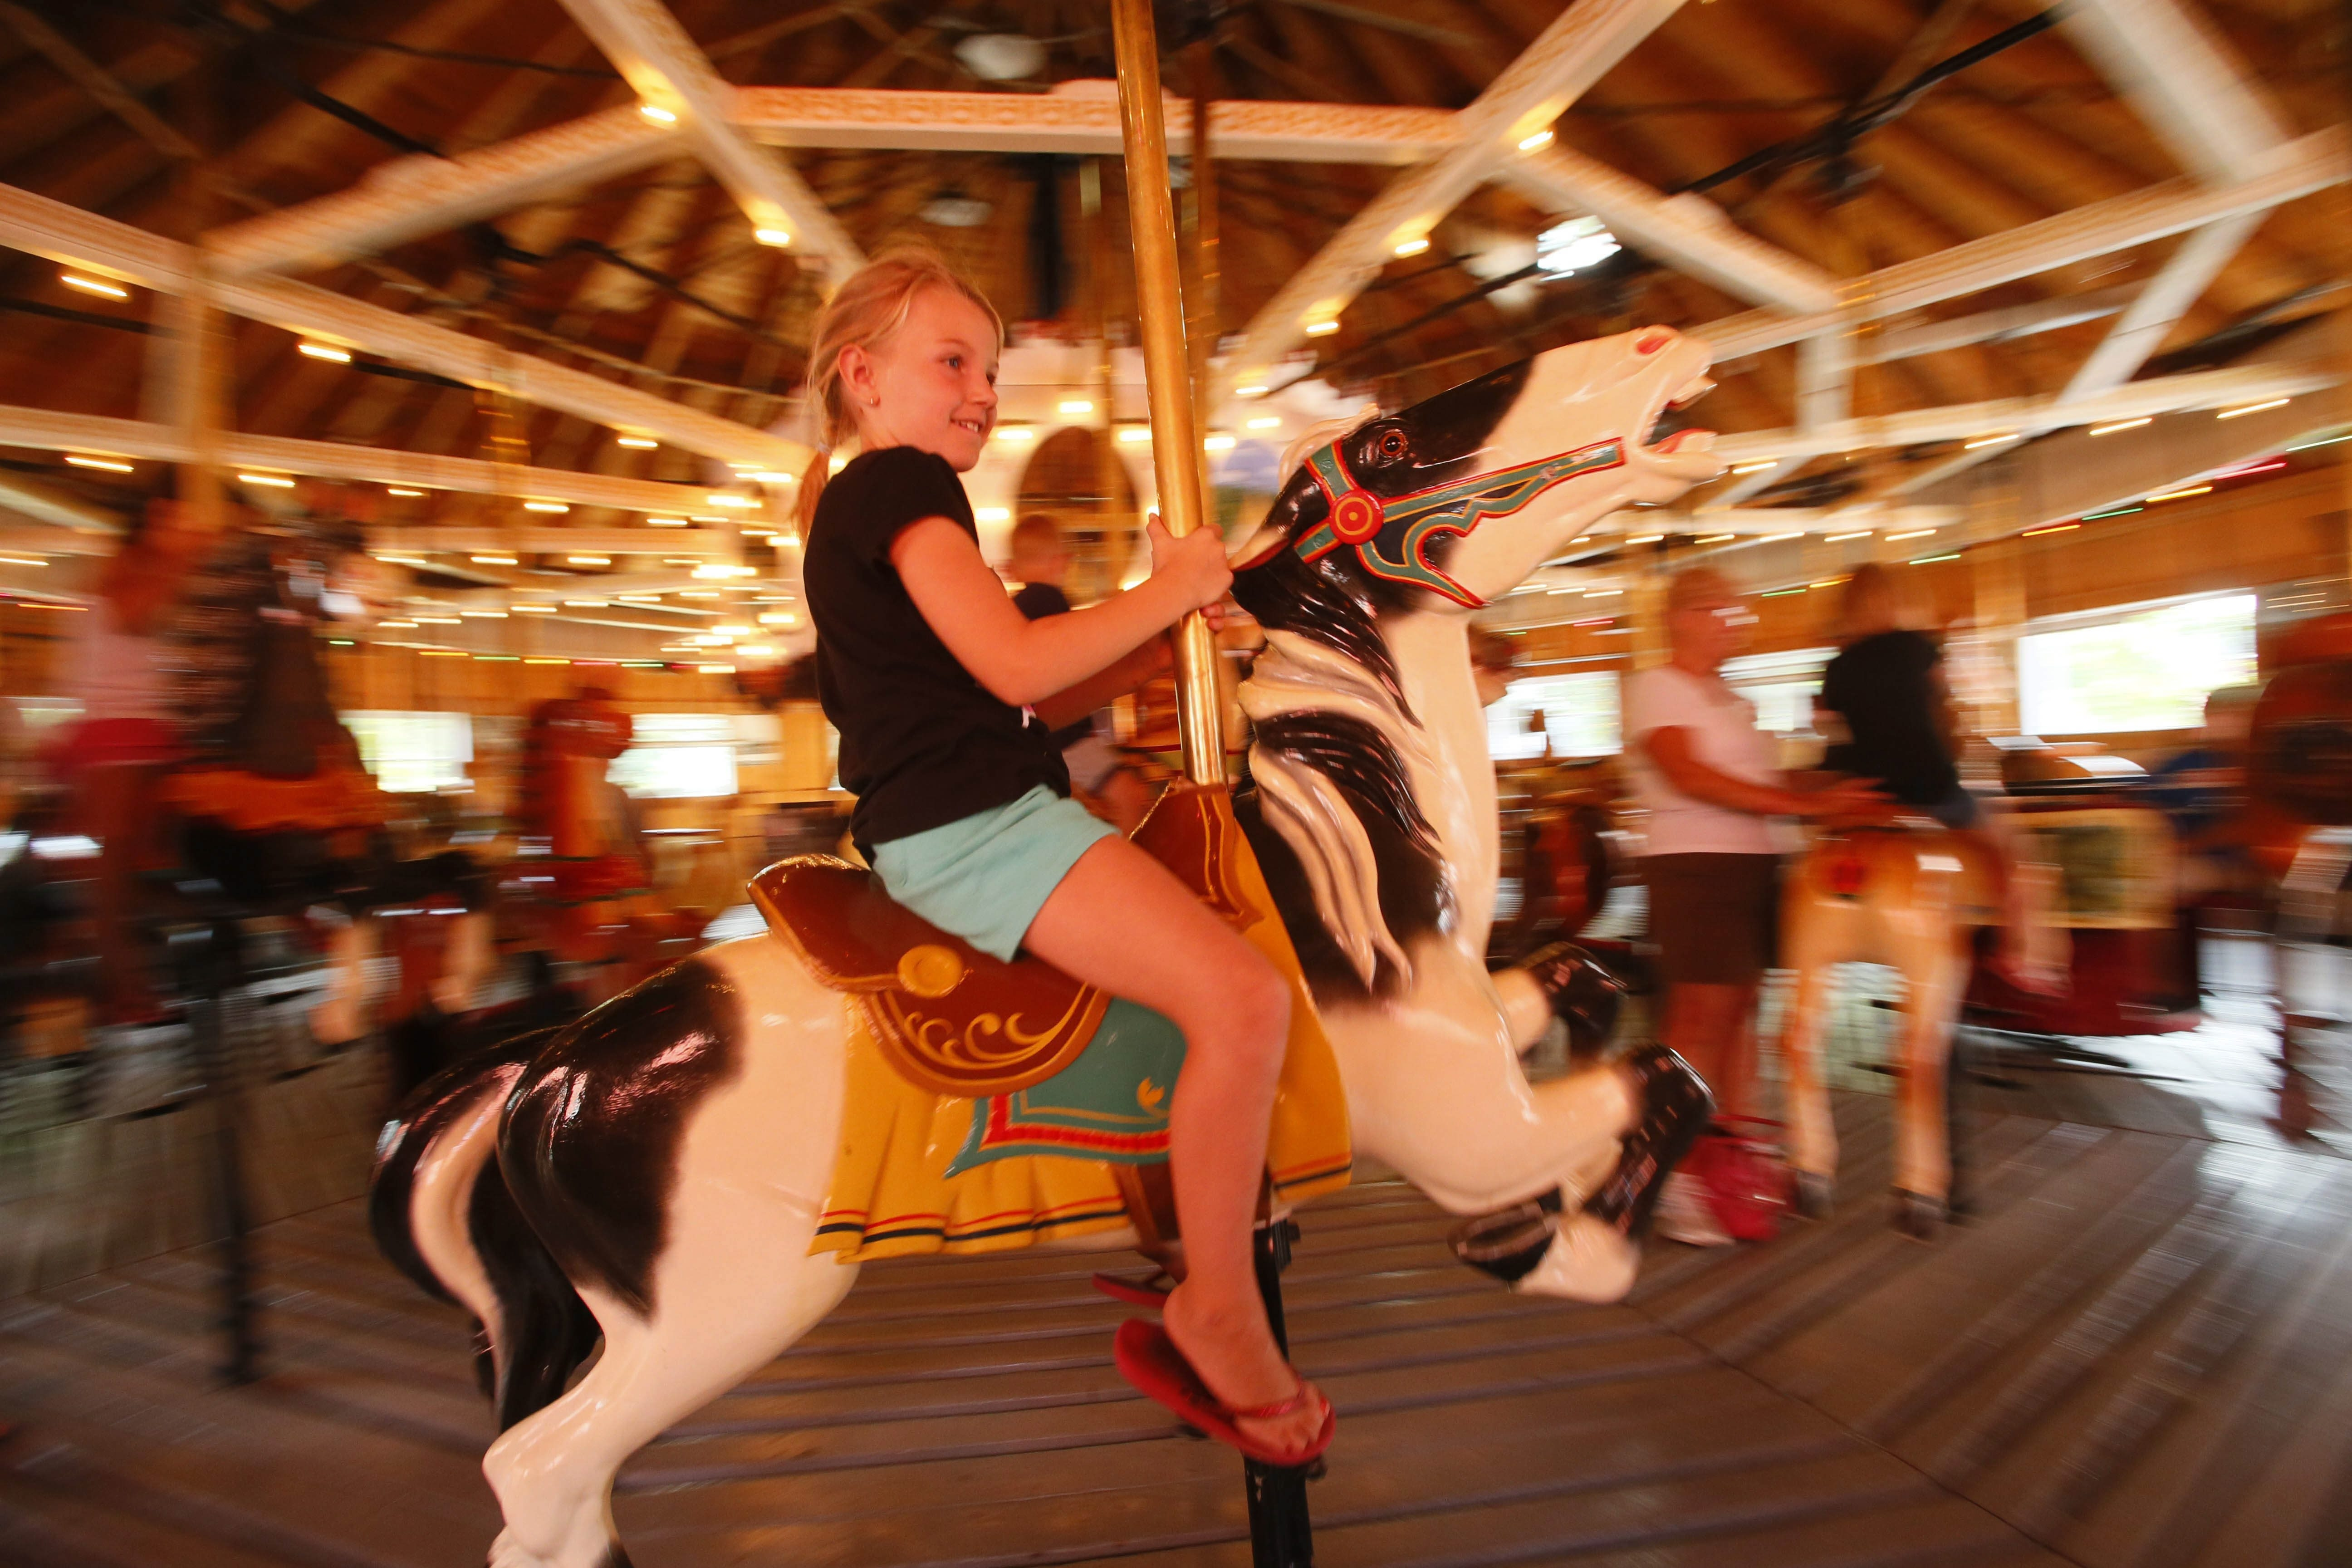 Madison Warthling, 8, goes for a spin at the Herschell Carousel Factory Museum in North Tonawanda. A carousel at Canalside will provide a historic link to the factory.